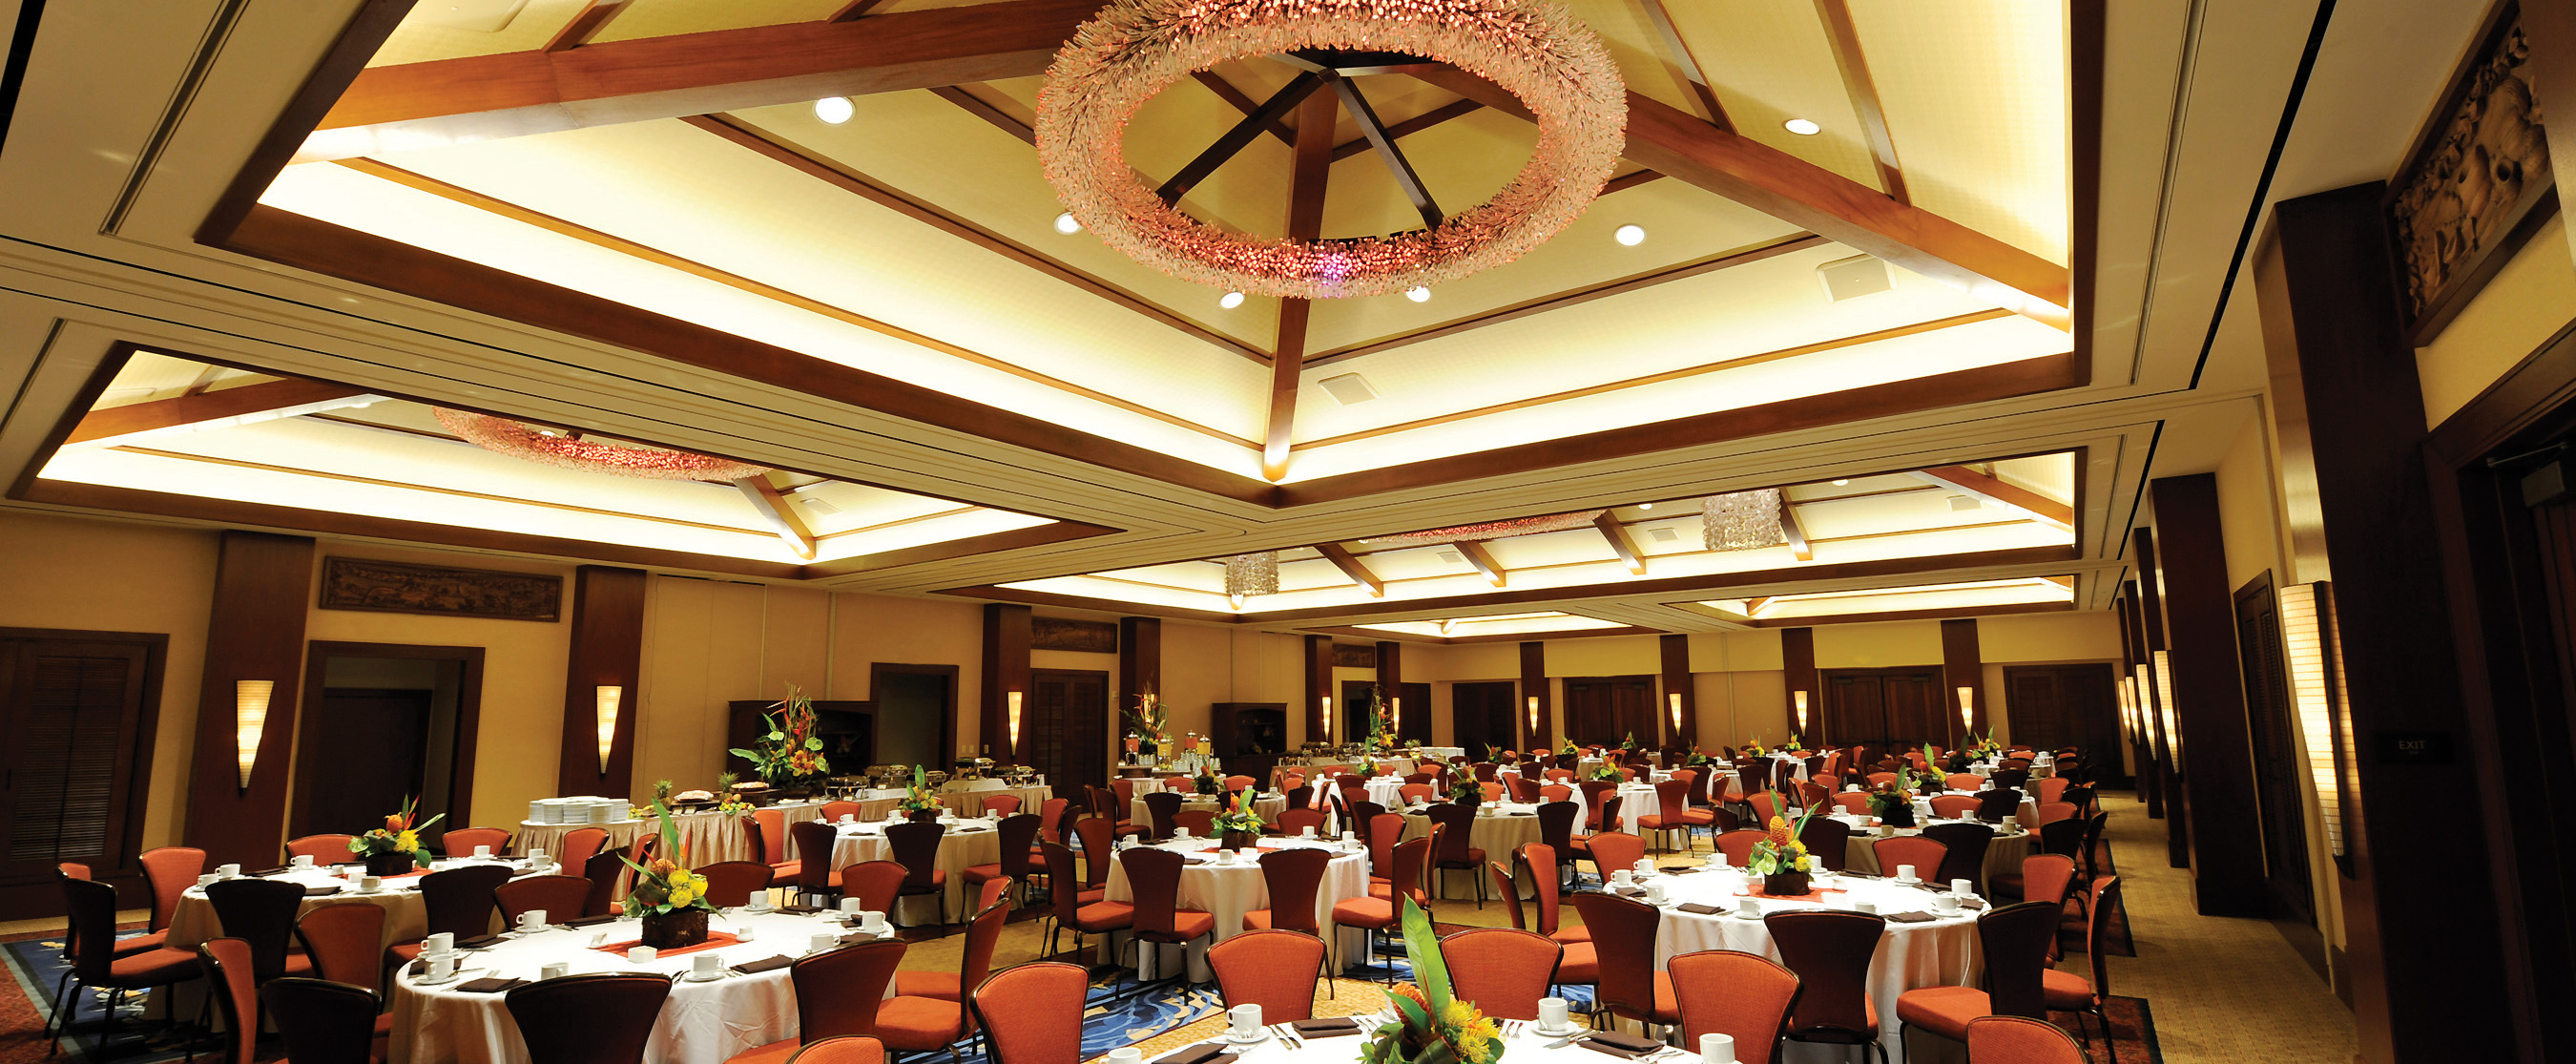 A ballroom with dining tables and chairs set up to host a buffet meal